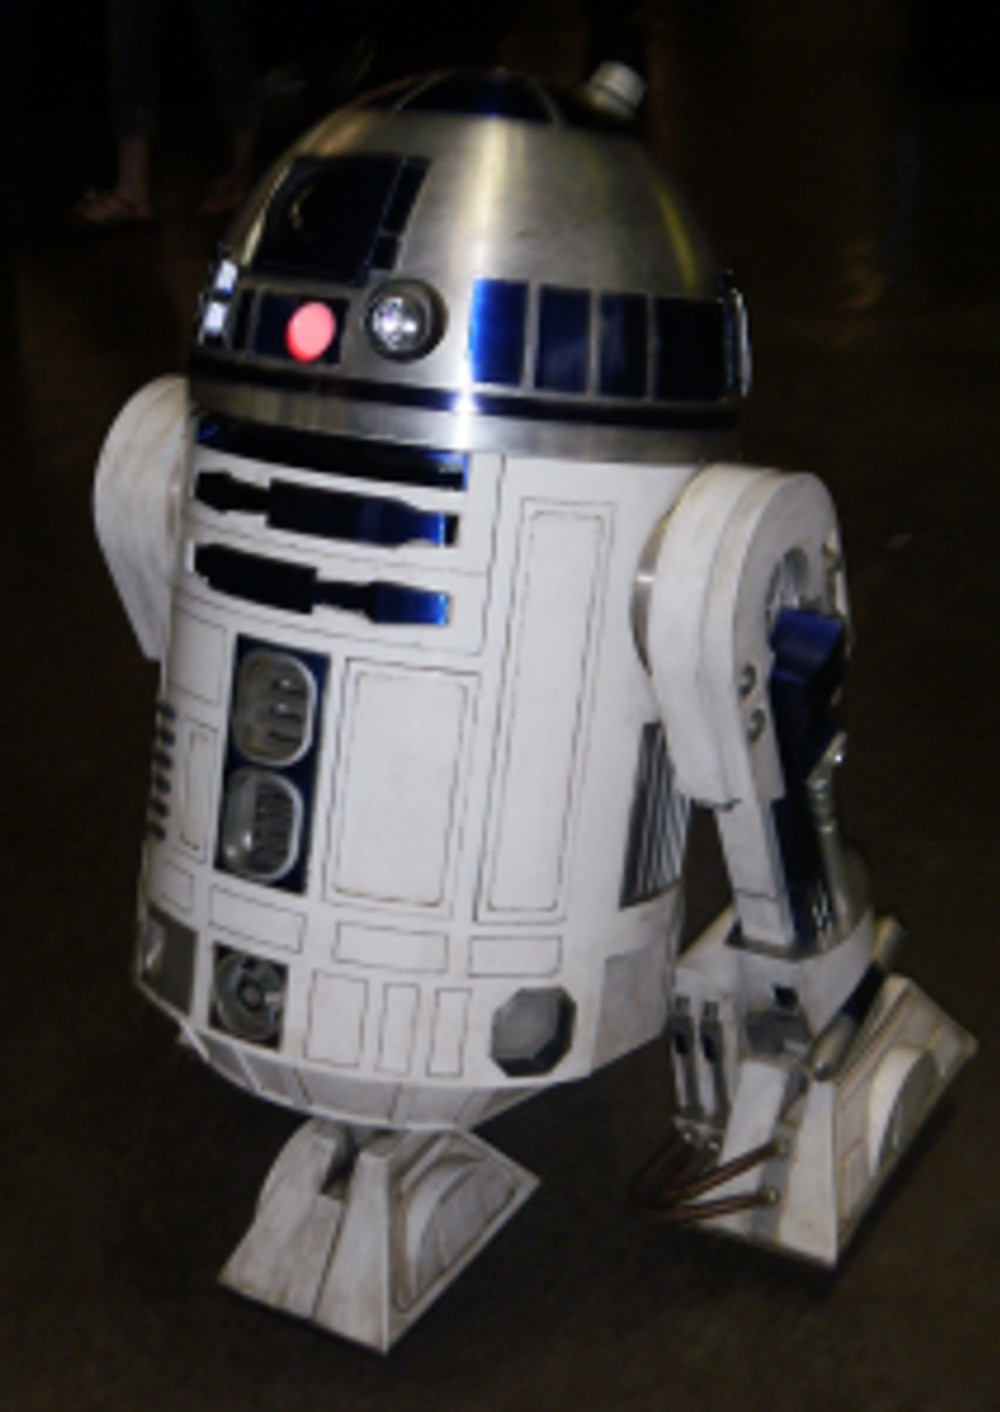 R2 was on hand as well, built from scratch by one of our members.  He moved and sounded just like the real thing.